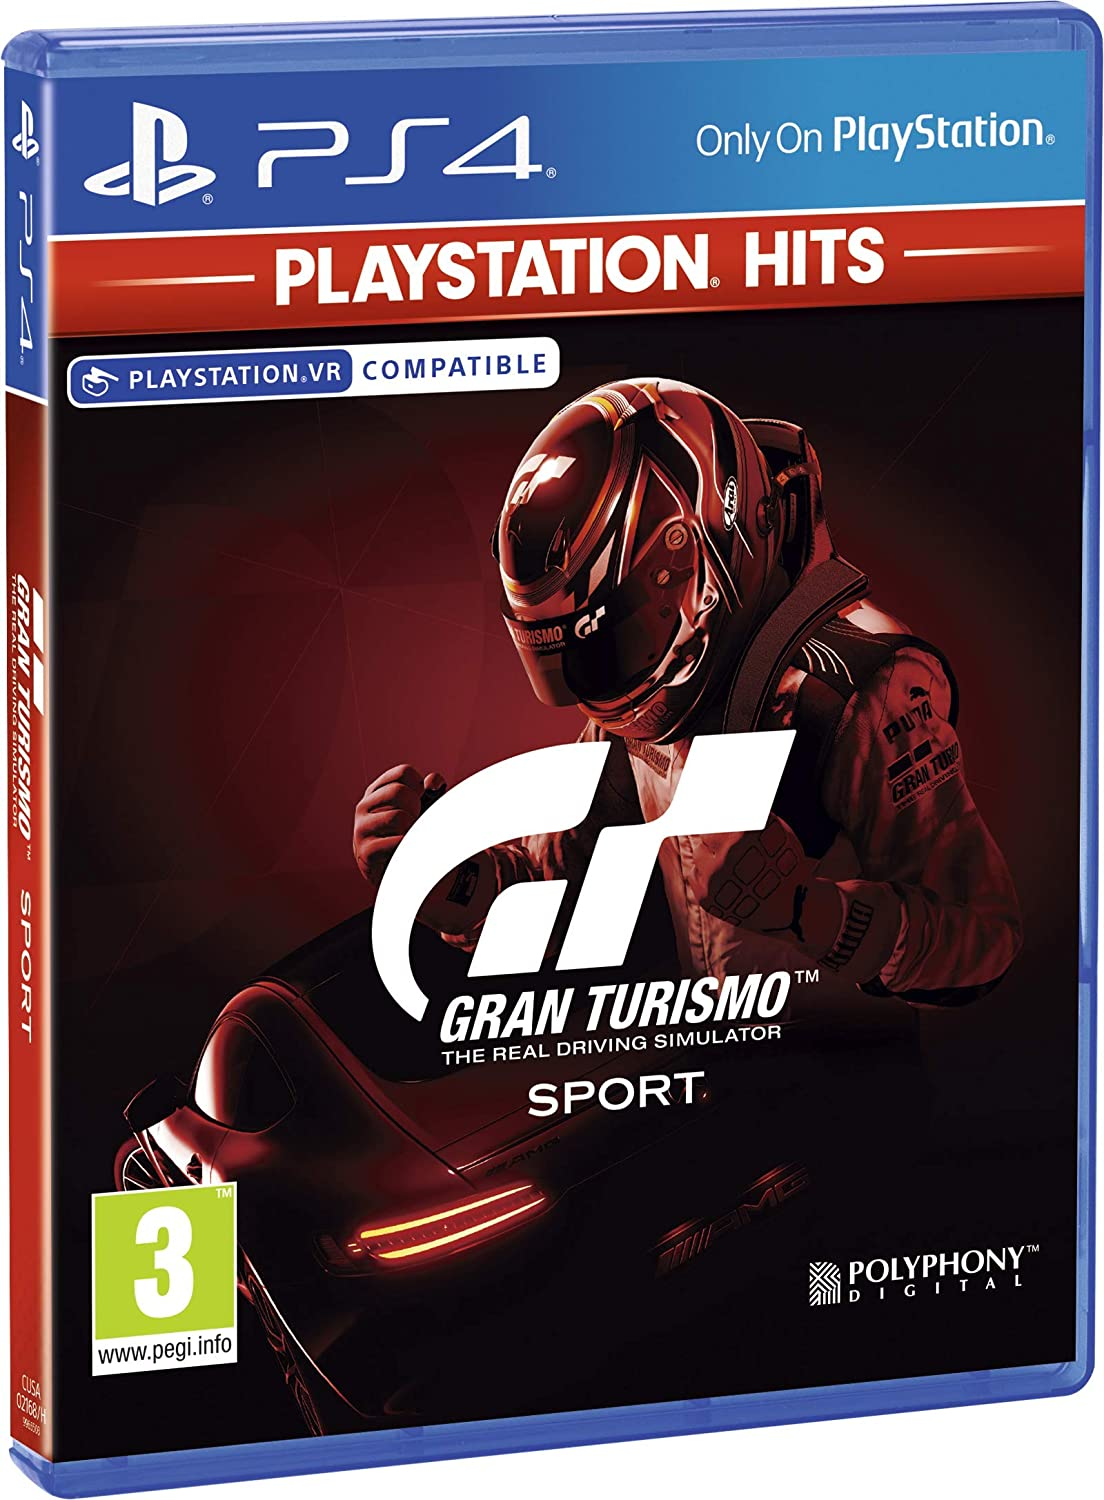 Gran Turismo: Sport (Playstation Hits) (UK/Arabic)